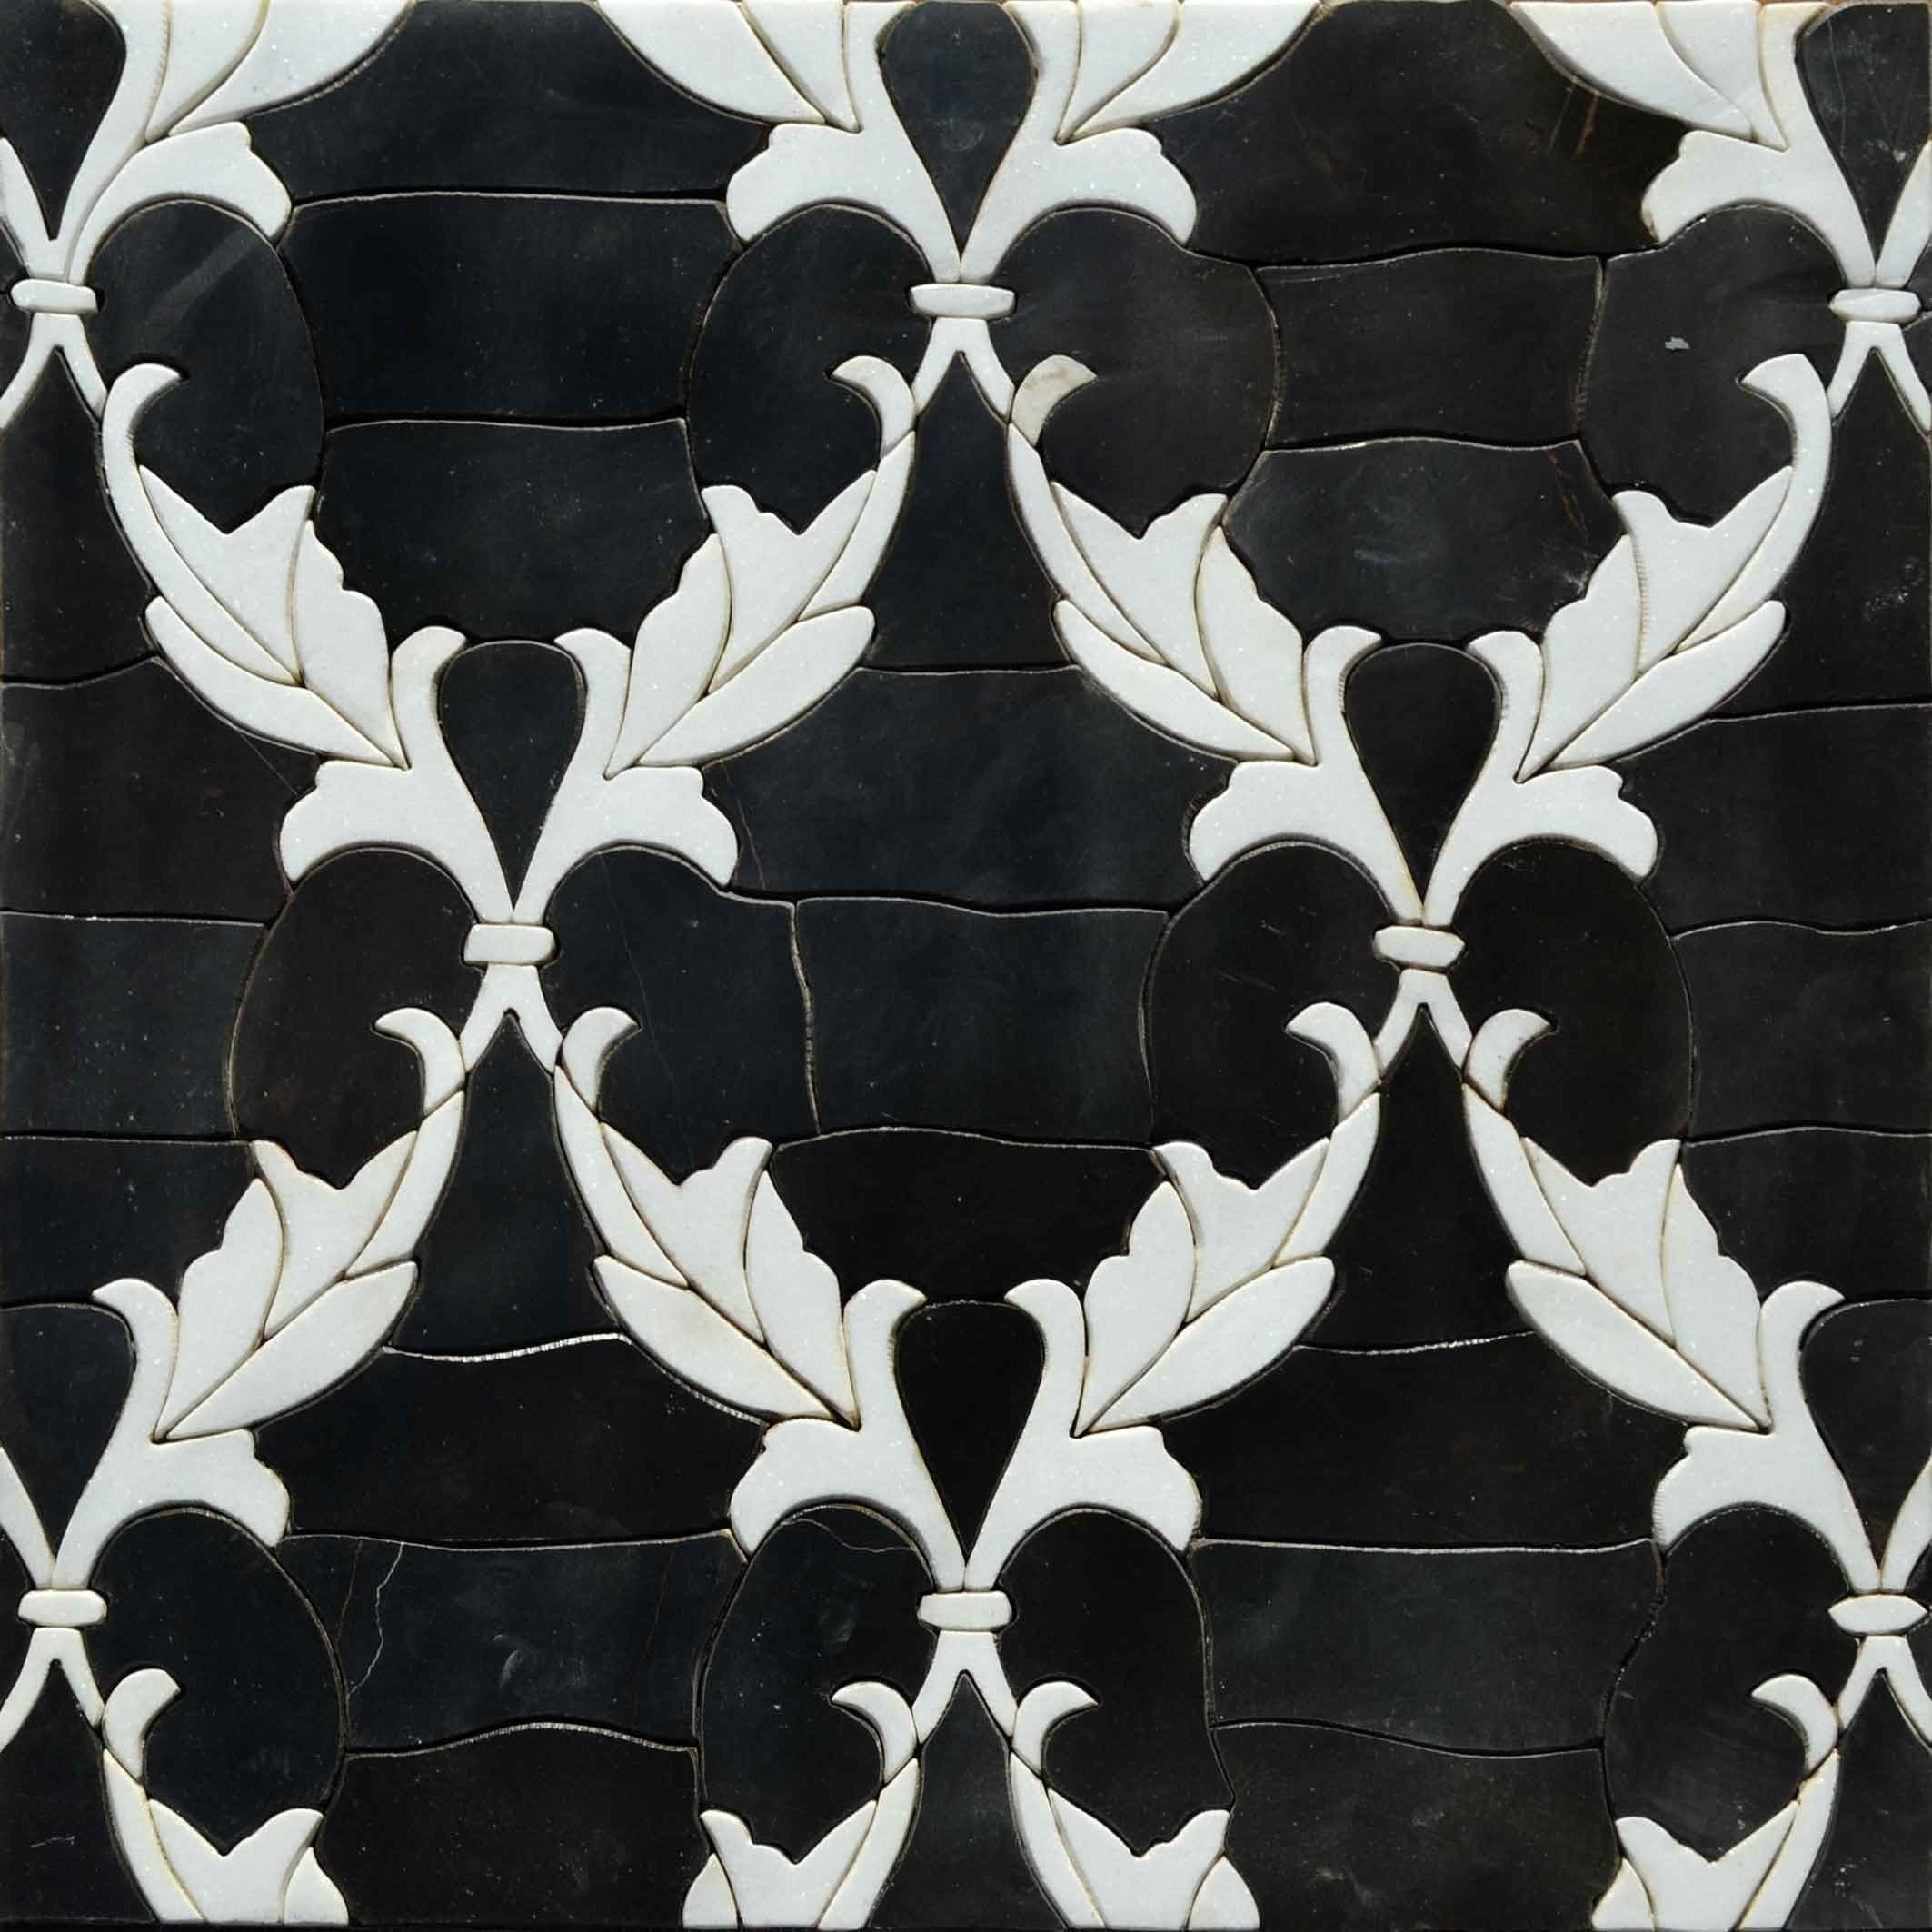 Floral Mosaic Black and White Wallpaper